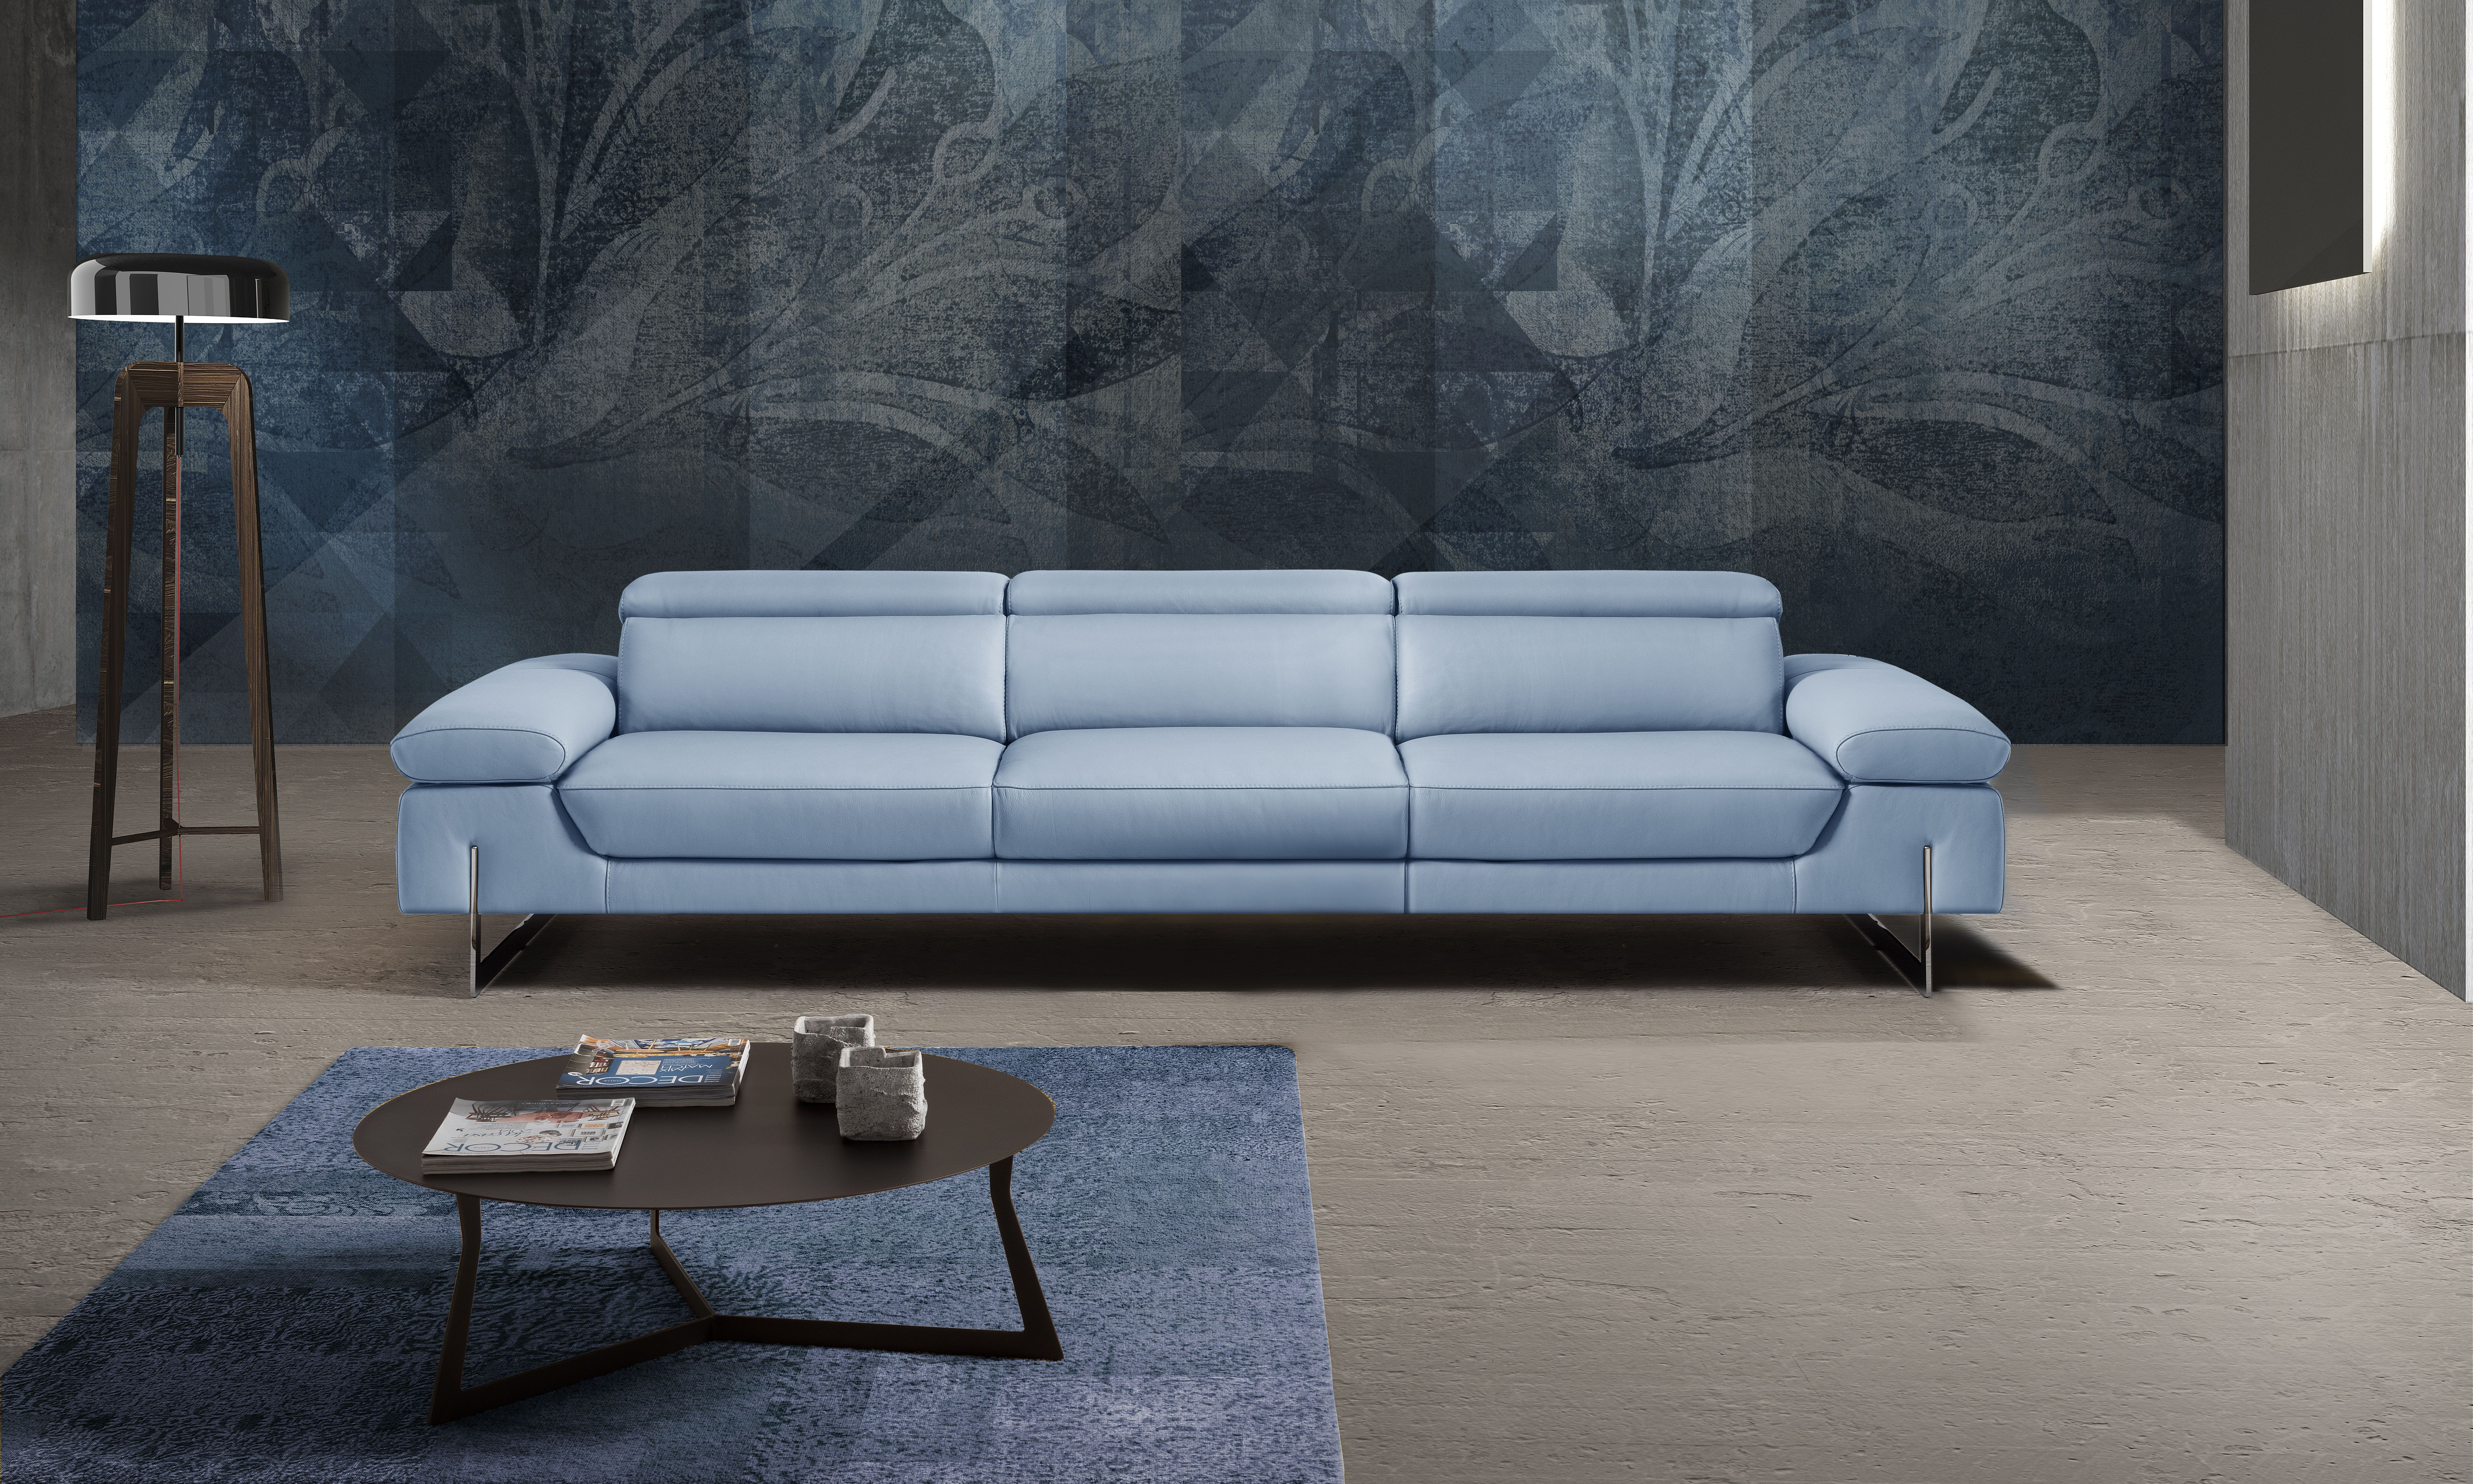 Ecointeriors Ecoexclusive Egoitaliano Couch Italian Design Dublin Santry Dunlaoghaire In 2020 Living Room Partition Leather Sofa Tufted Sofa